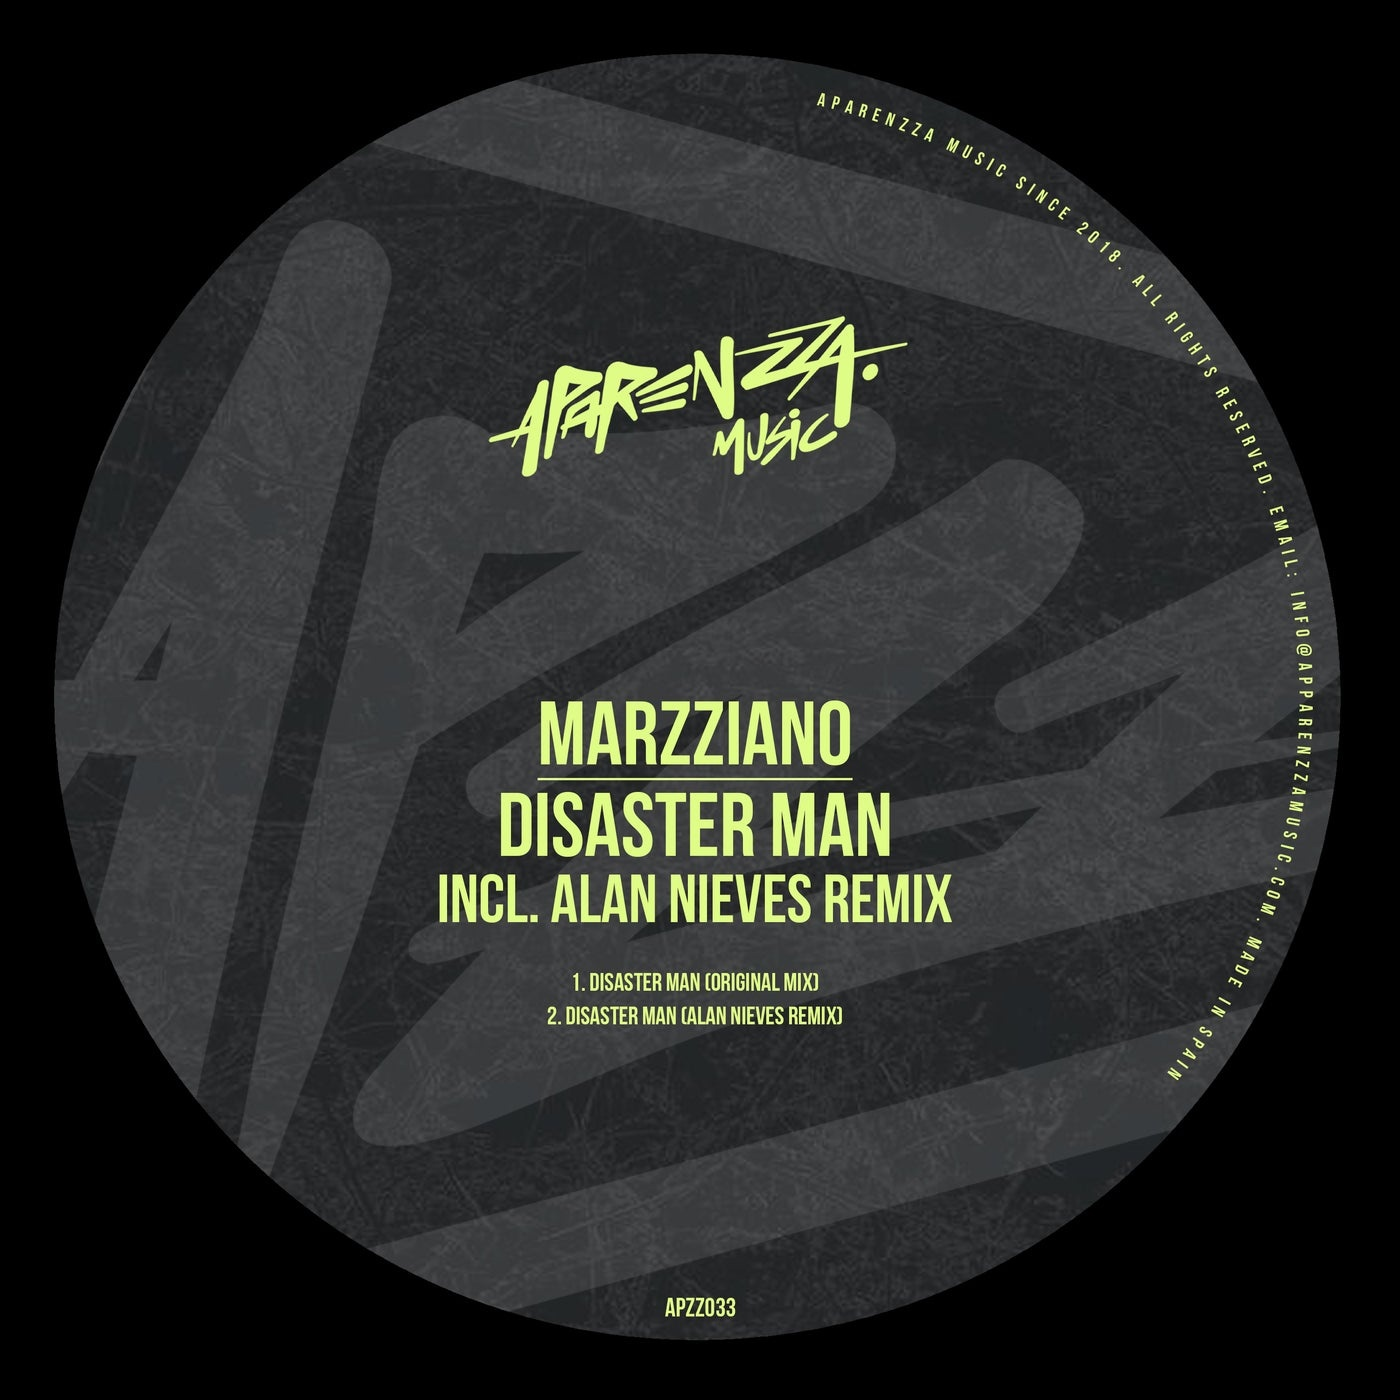 Cover - Marzziano - Disaster Man (Original Mix)